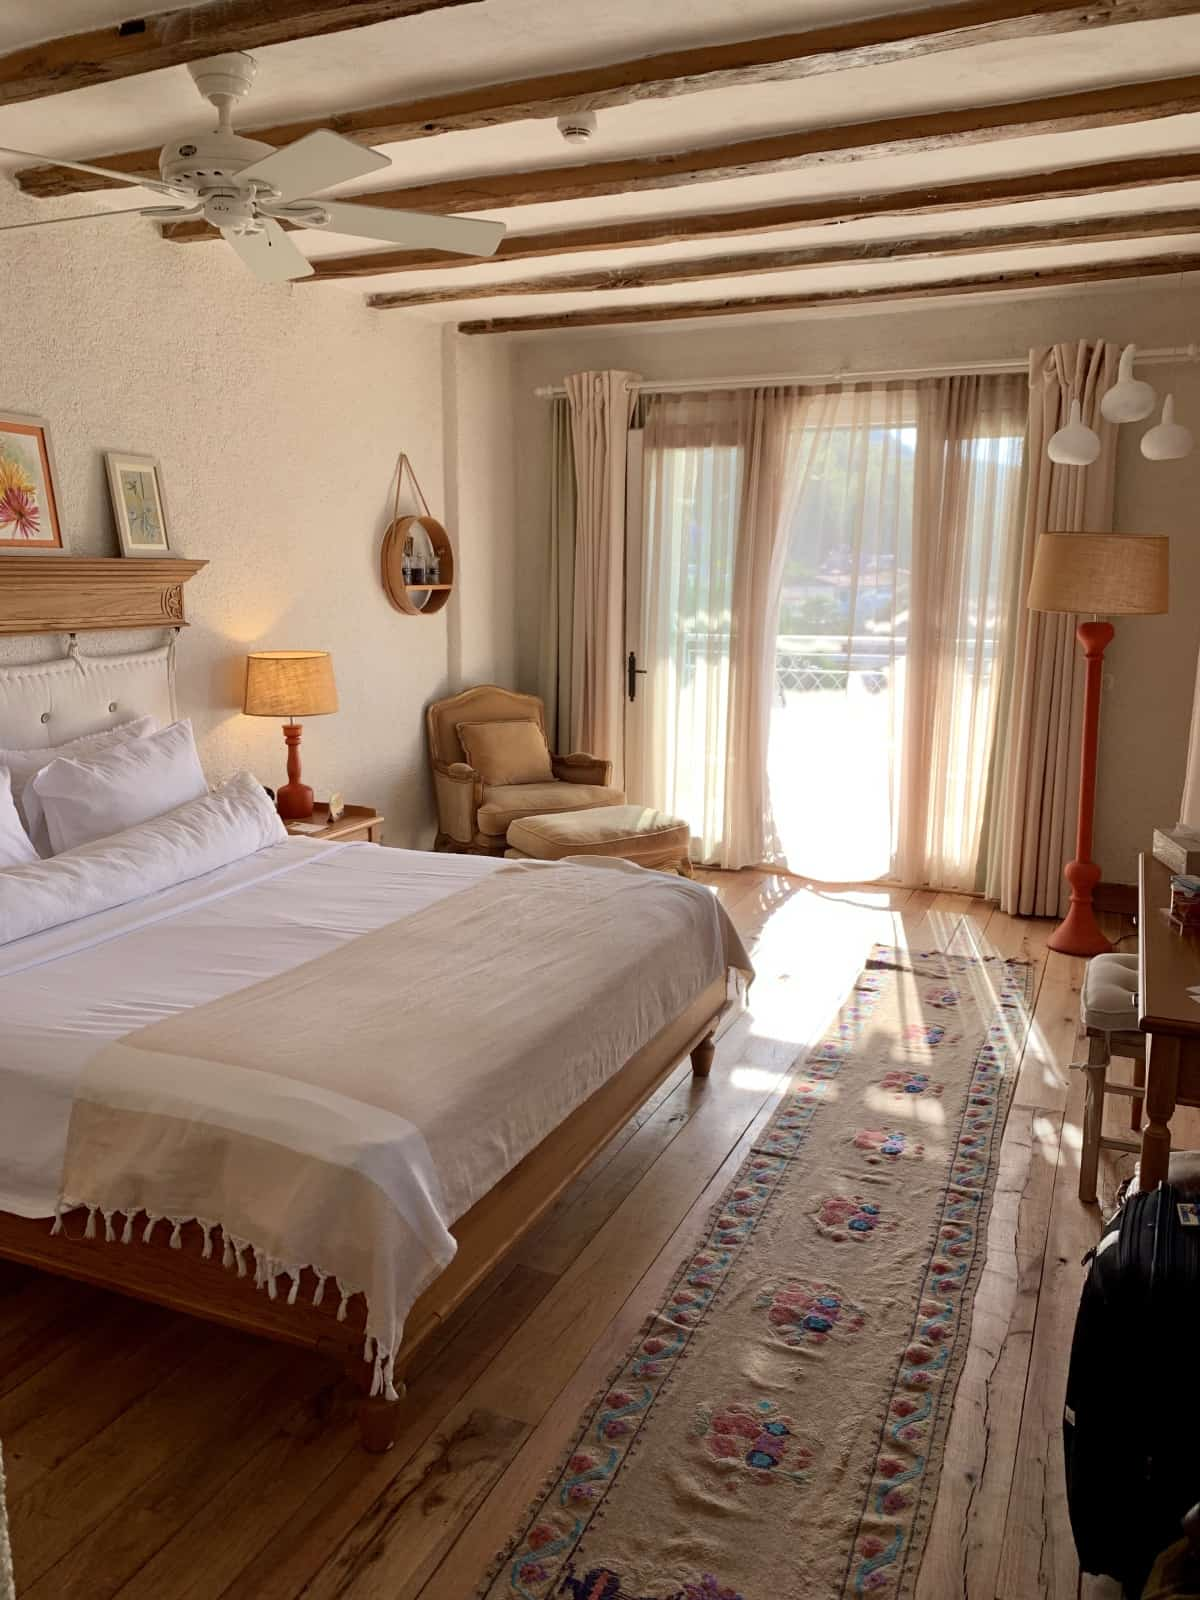 Clean and spacious rooms at Hotel Unique, Fethiye